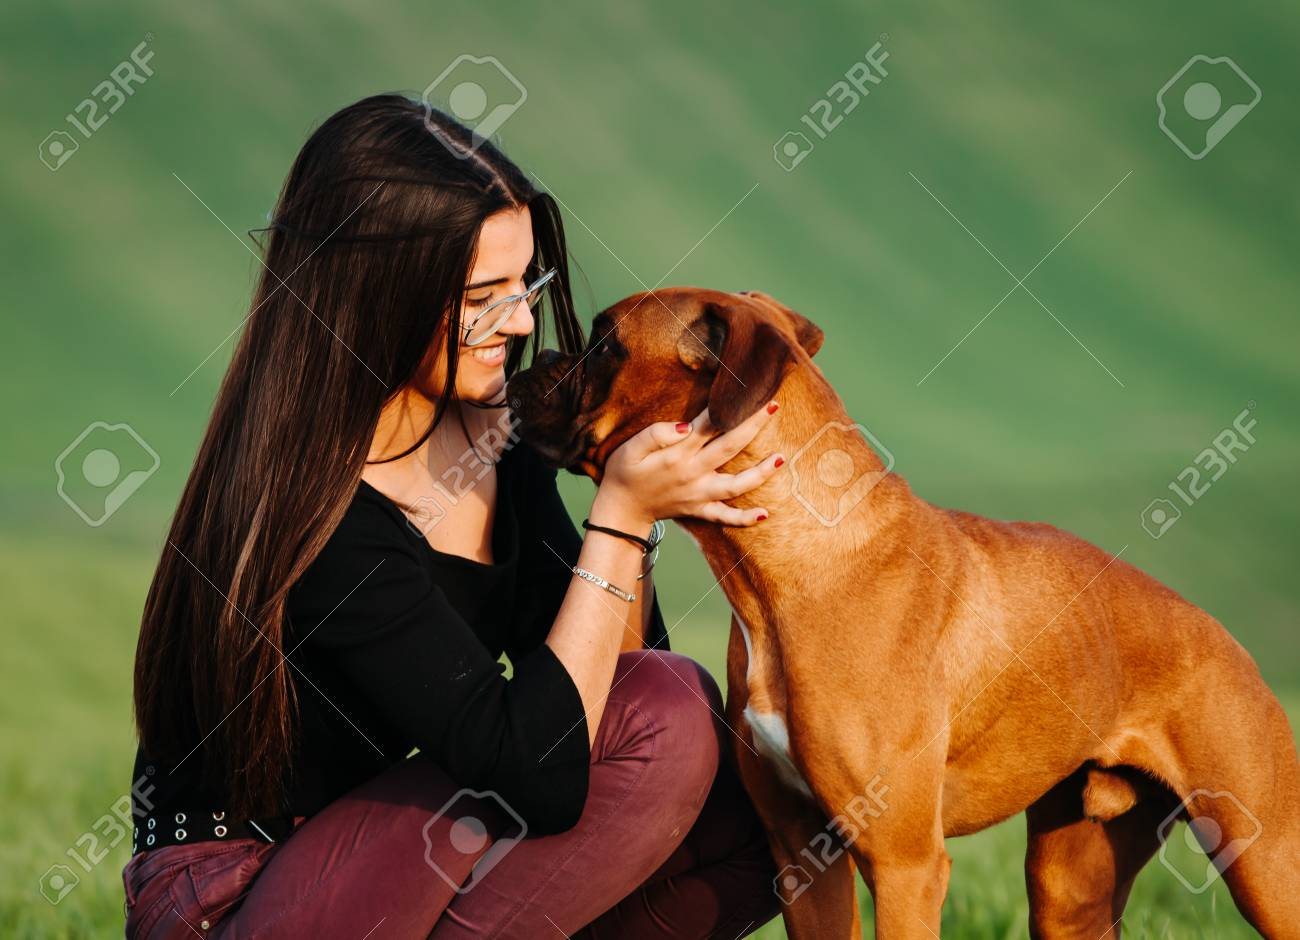 Girl Loving Her Boxer Dog In The Green Meadow Stock Photo, Picture And  Royalty Free Image. Image 121368791.